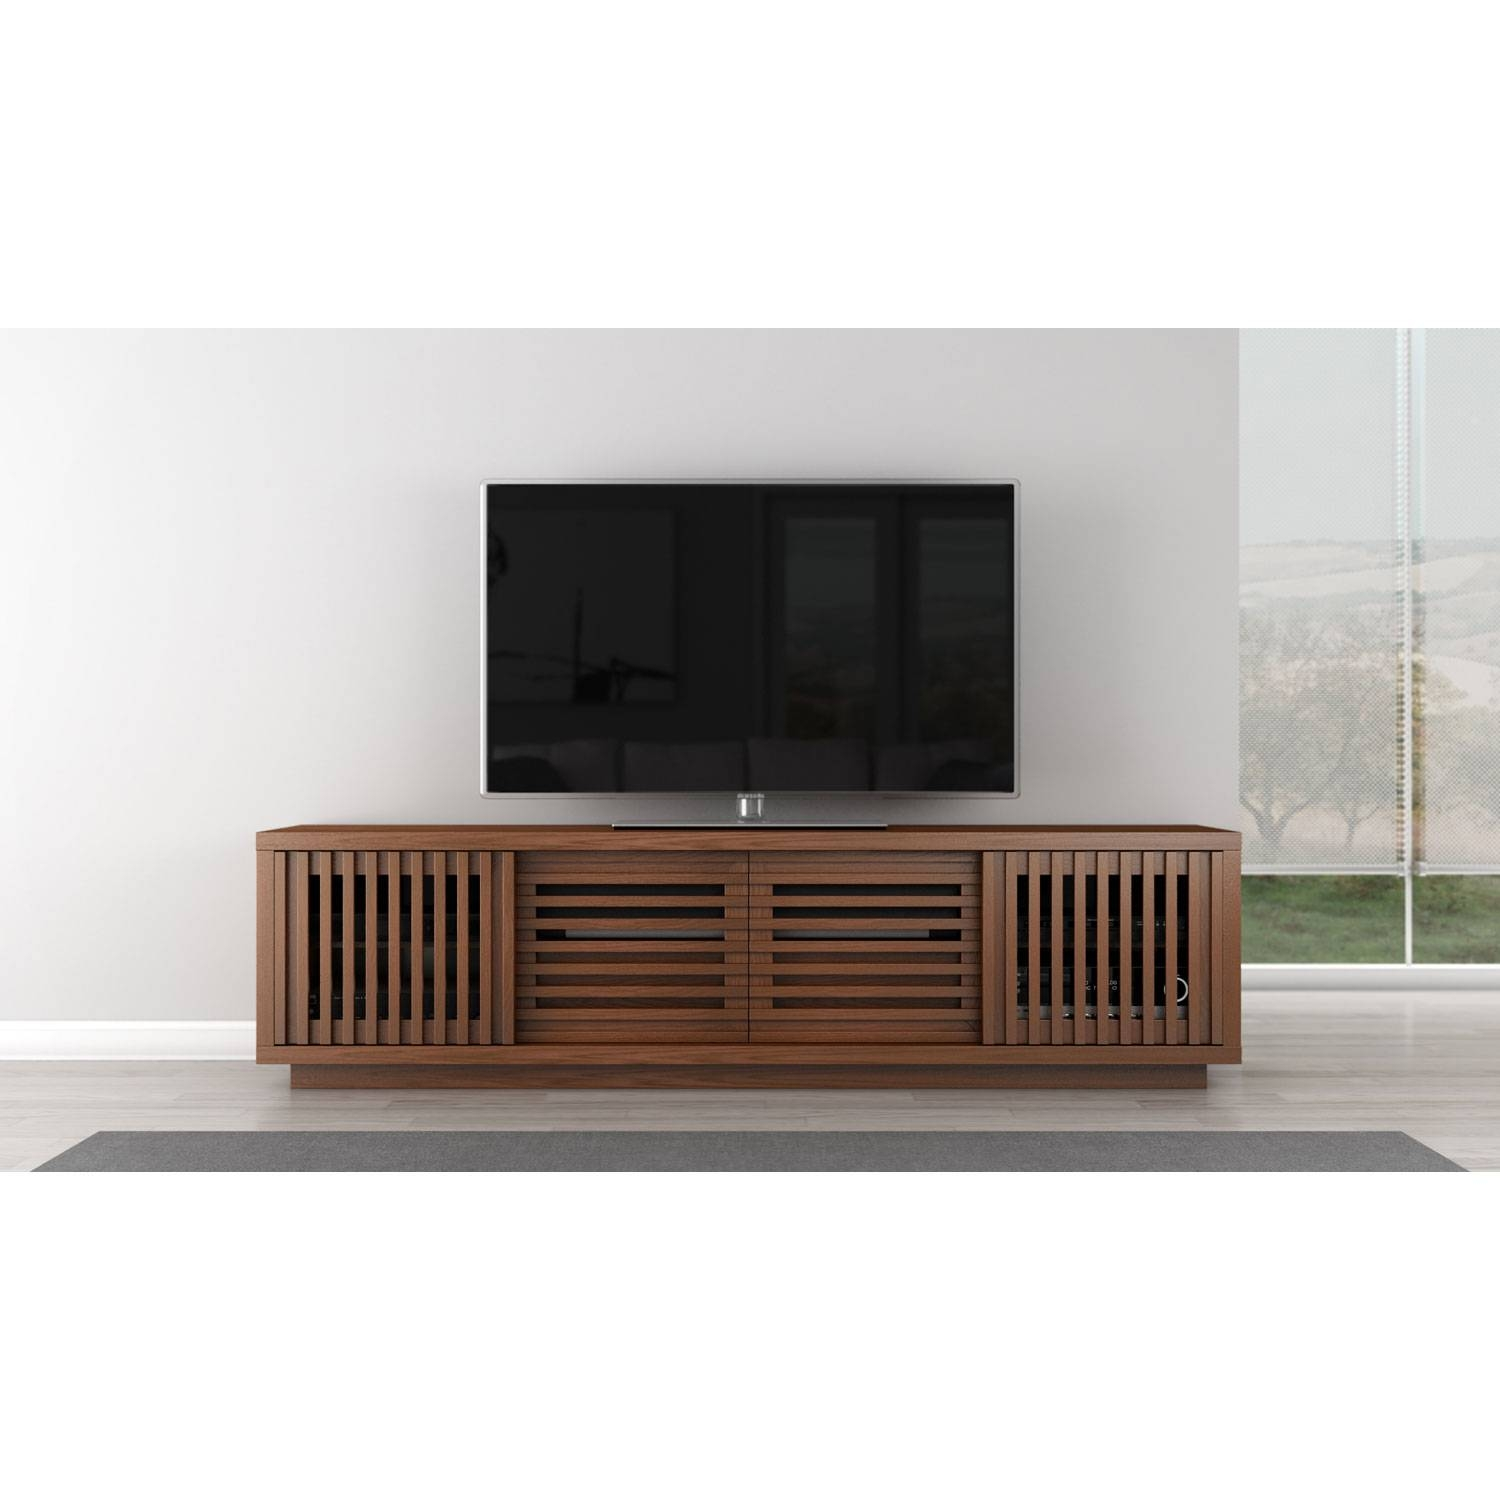 Signature Contemporary Rustic 82 Inch Warm Honey Finished White Pertaining To Honey Oak Tv Stands (View 2 of 15)